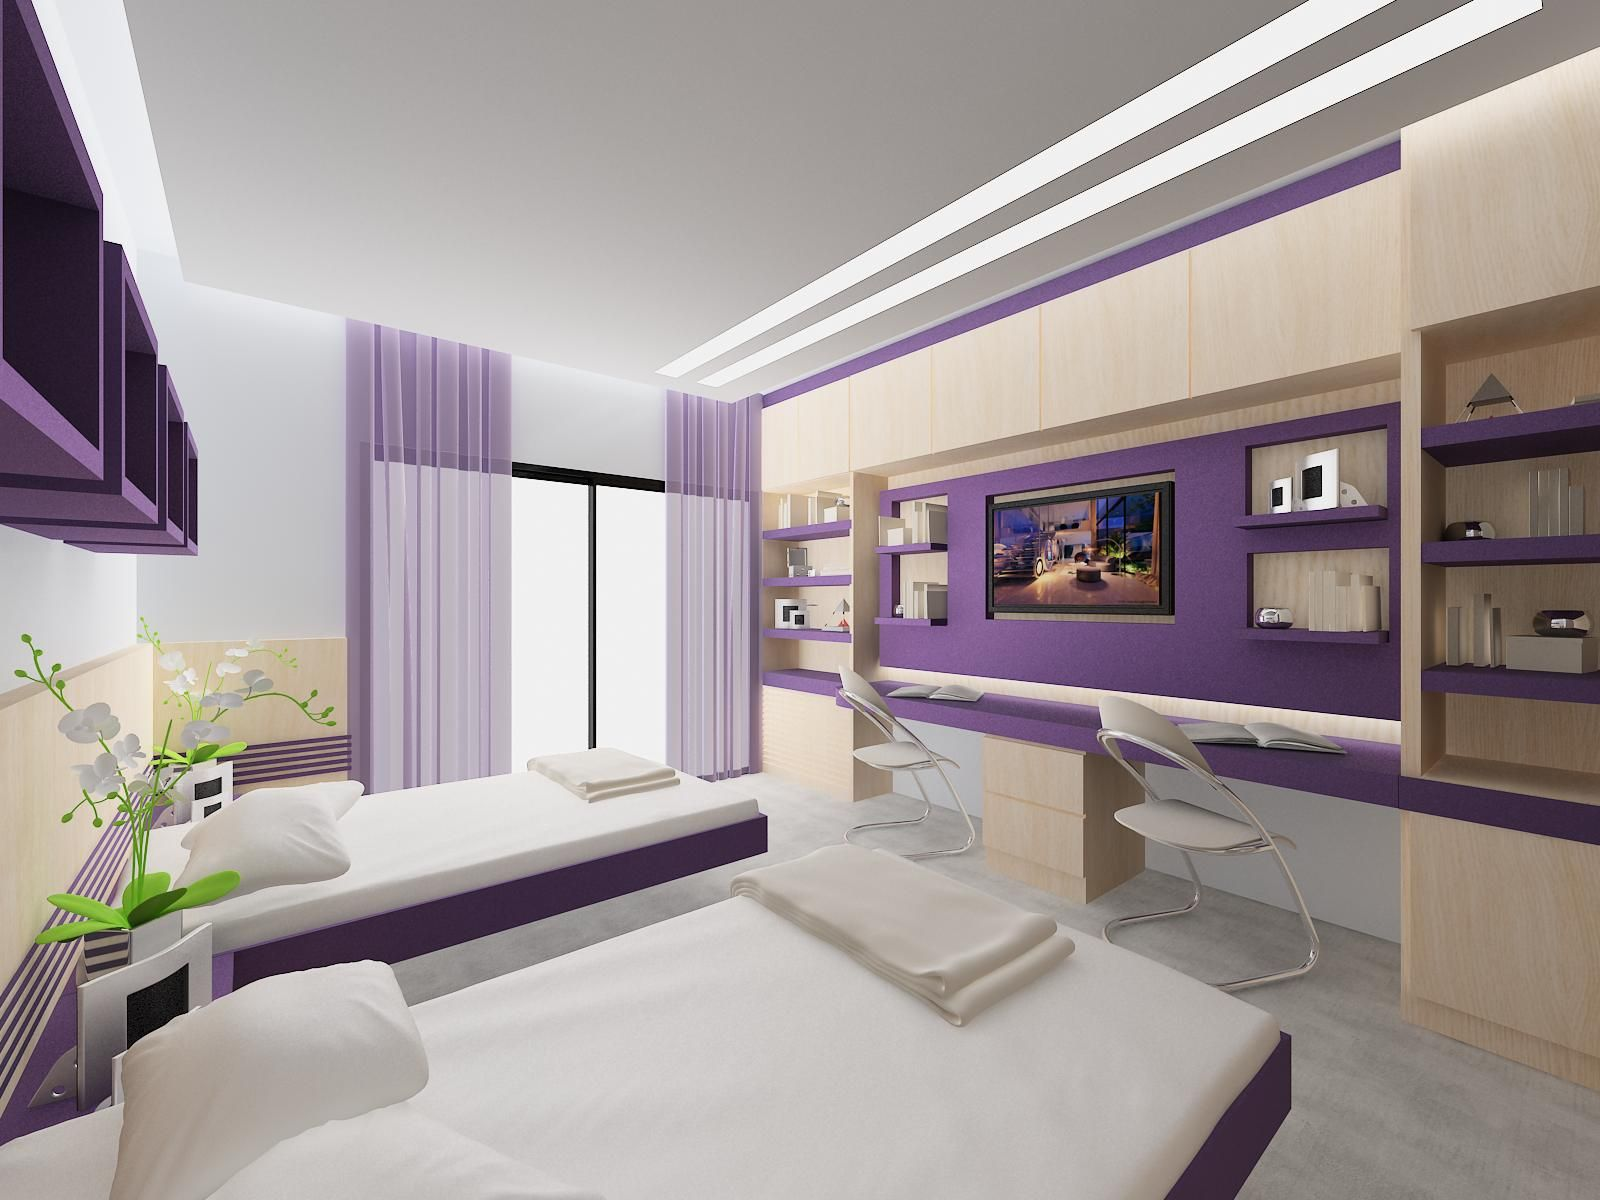 Bedroom design for 2 girls - Wonderful False Ceiling Lights For Teen Girls Bedroom Designs